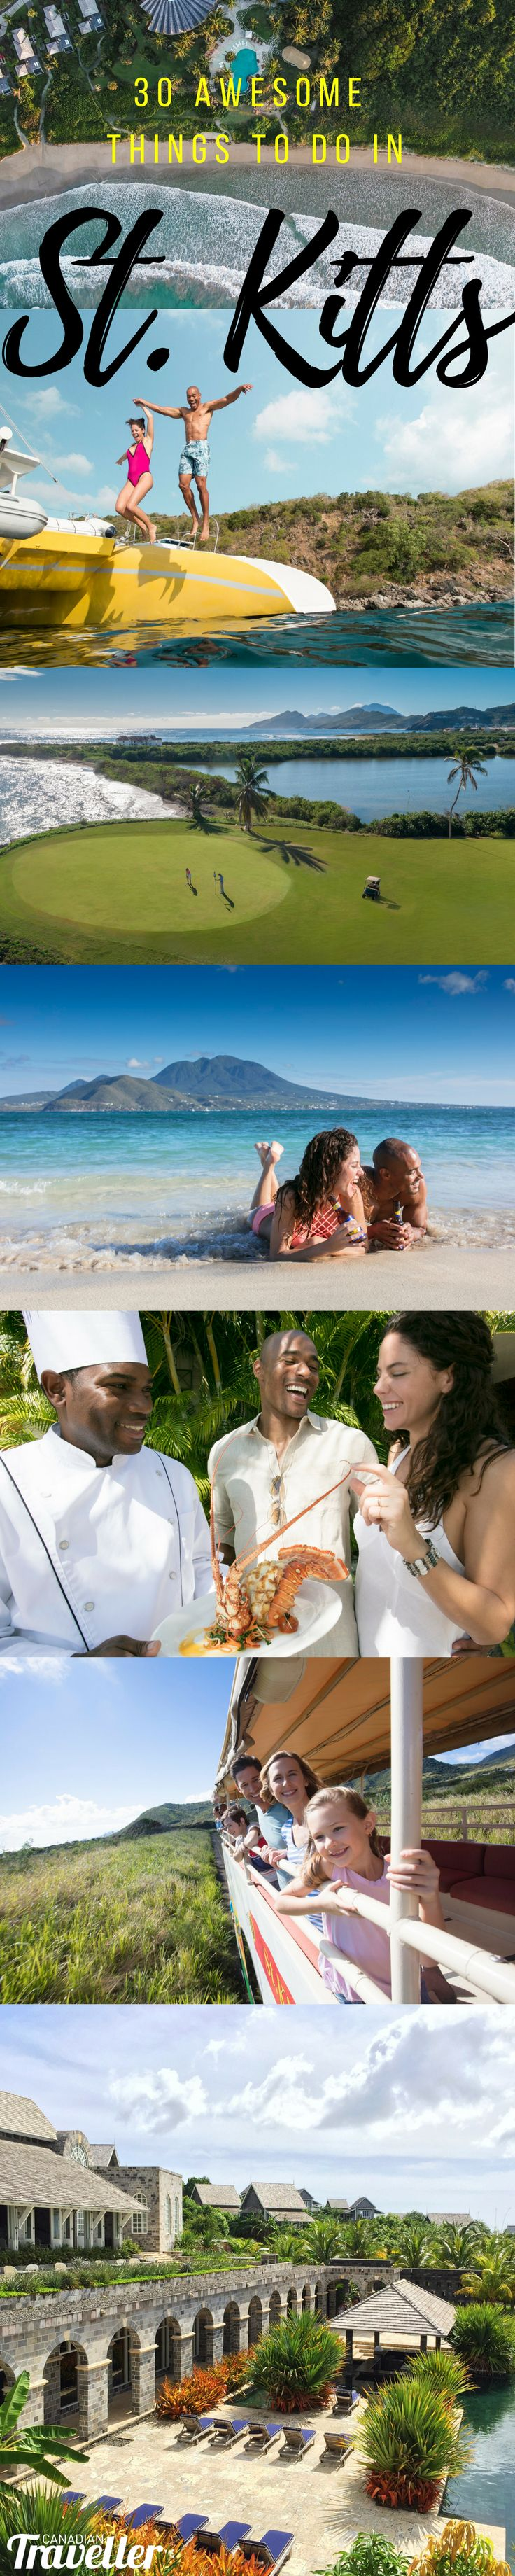 30 Awesome Things You Need to do in St. Kitts via Canadian Traveller Magazine.   #see #do #plan #highlights #St.Kitts #StKitts #things #eat #drink #outdoors #active #holiday #vacation